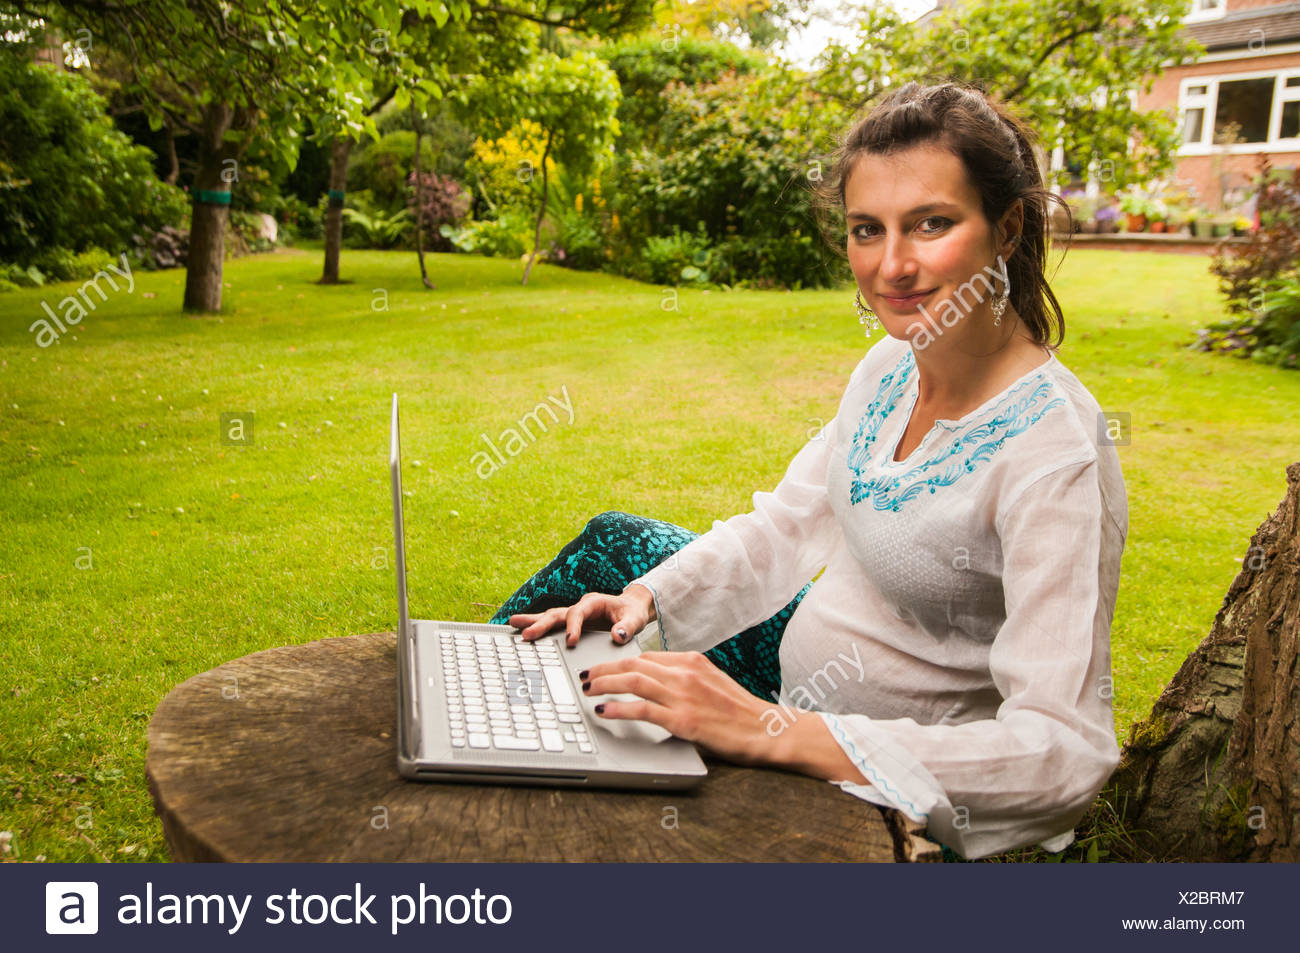 Pregnant woman sitting in garden working on her laptop - Stock Image